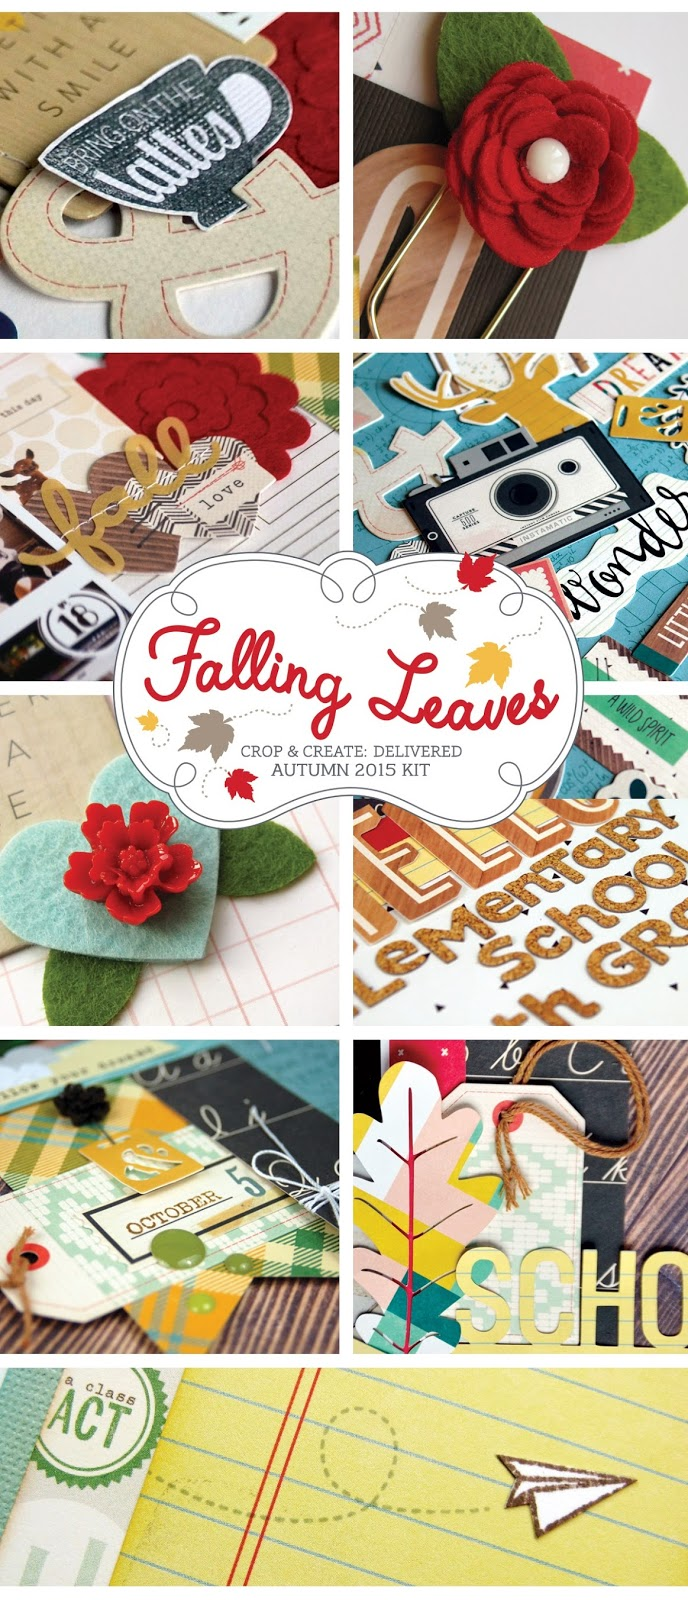 How to scrapbook magazines -  Falling Leaves Scrapbookingkit From Scrapbook Cards Today Magazine Available To Purchase